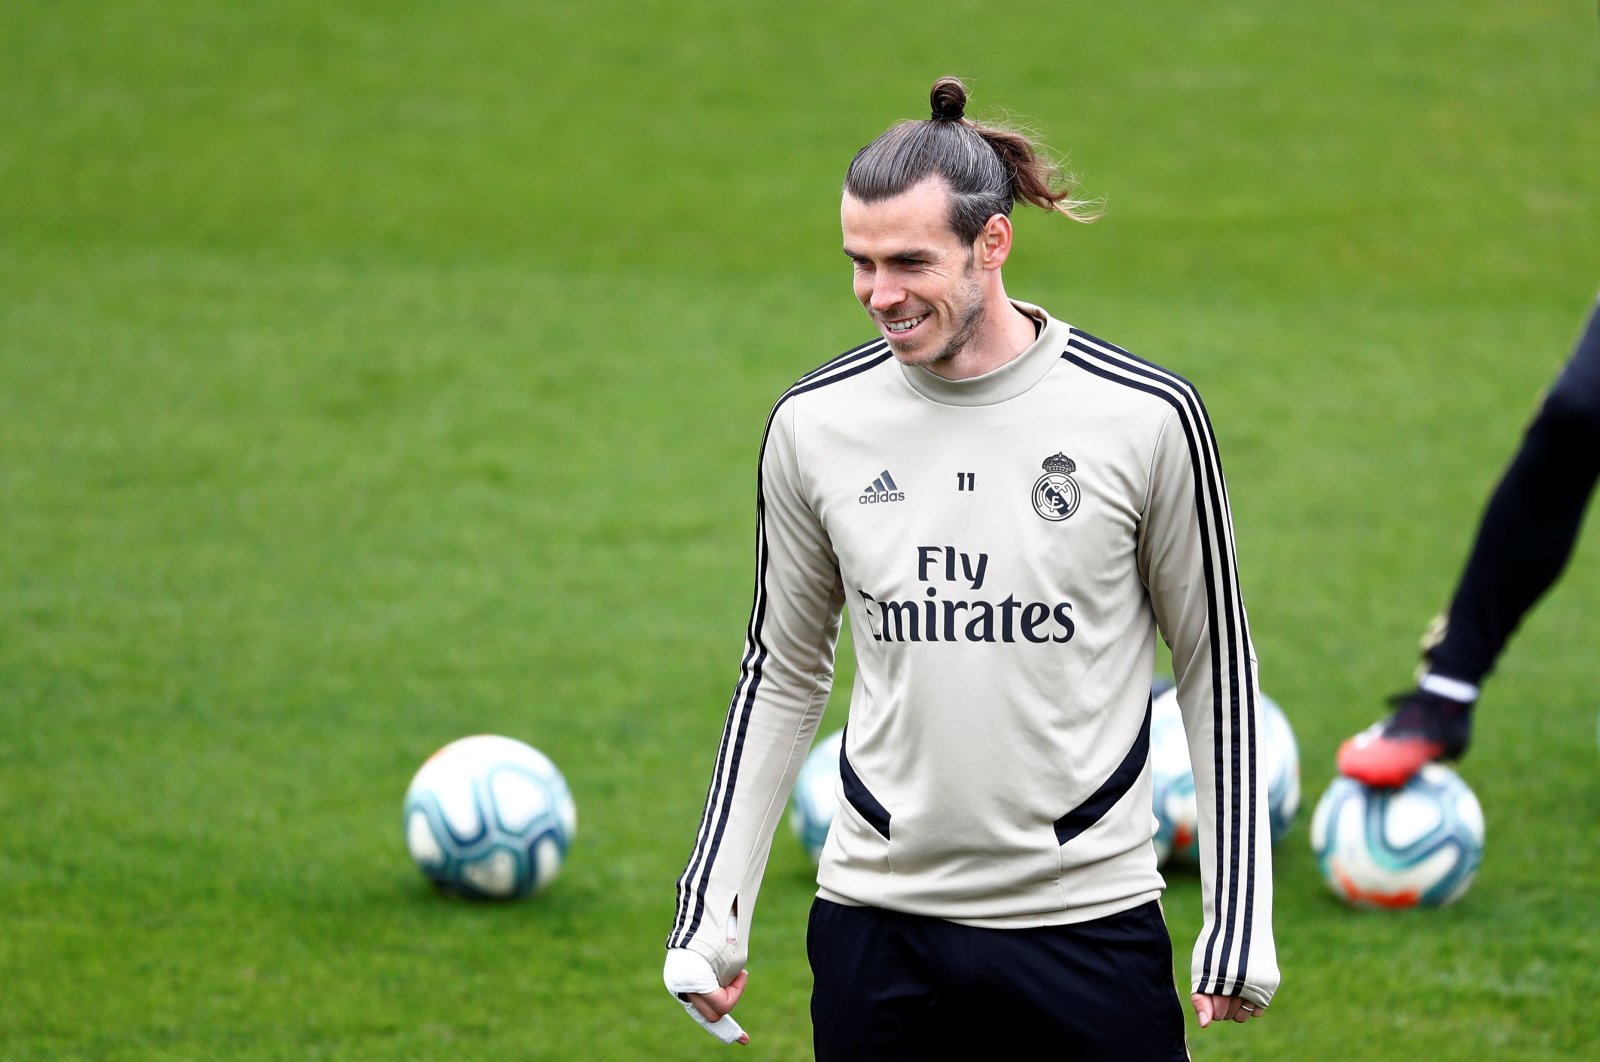 Real Madrid's Gareth Bale during training in Madrid, Spain, Feb. 29, 2020. (Reuters Photo)